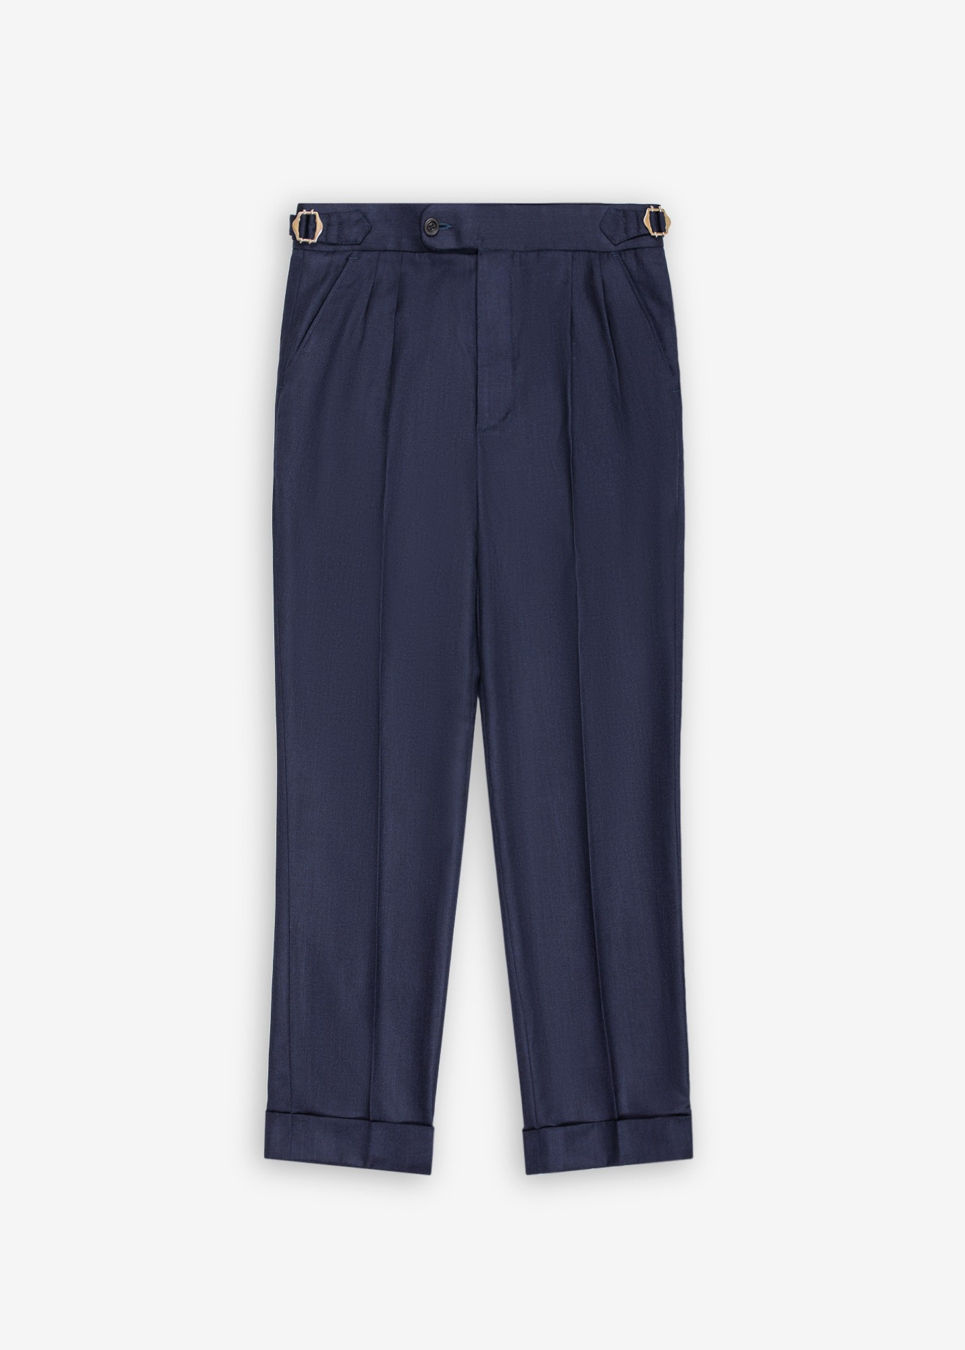 Rags And Lace Wool Pants (Navy)